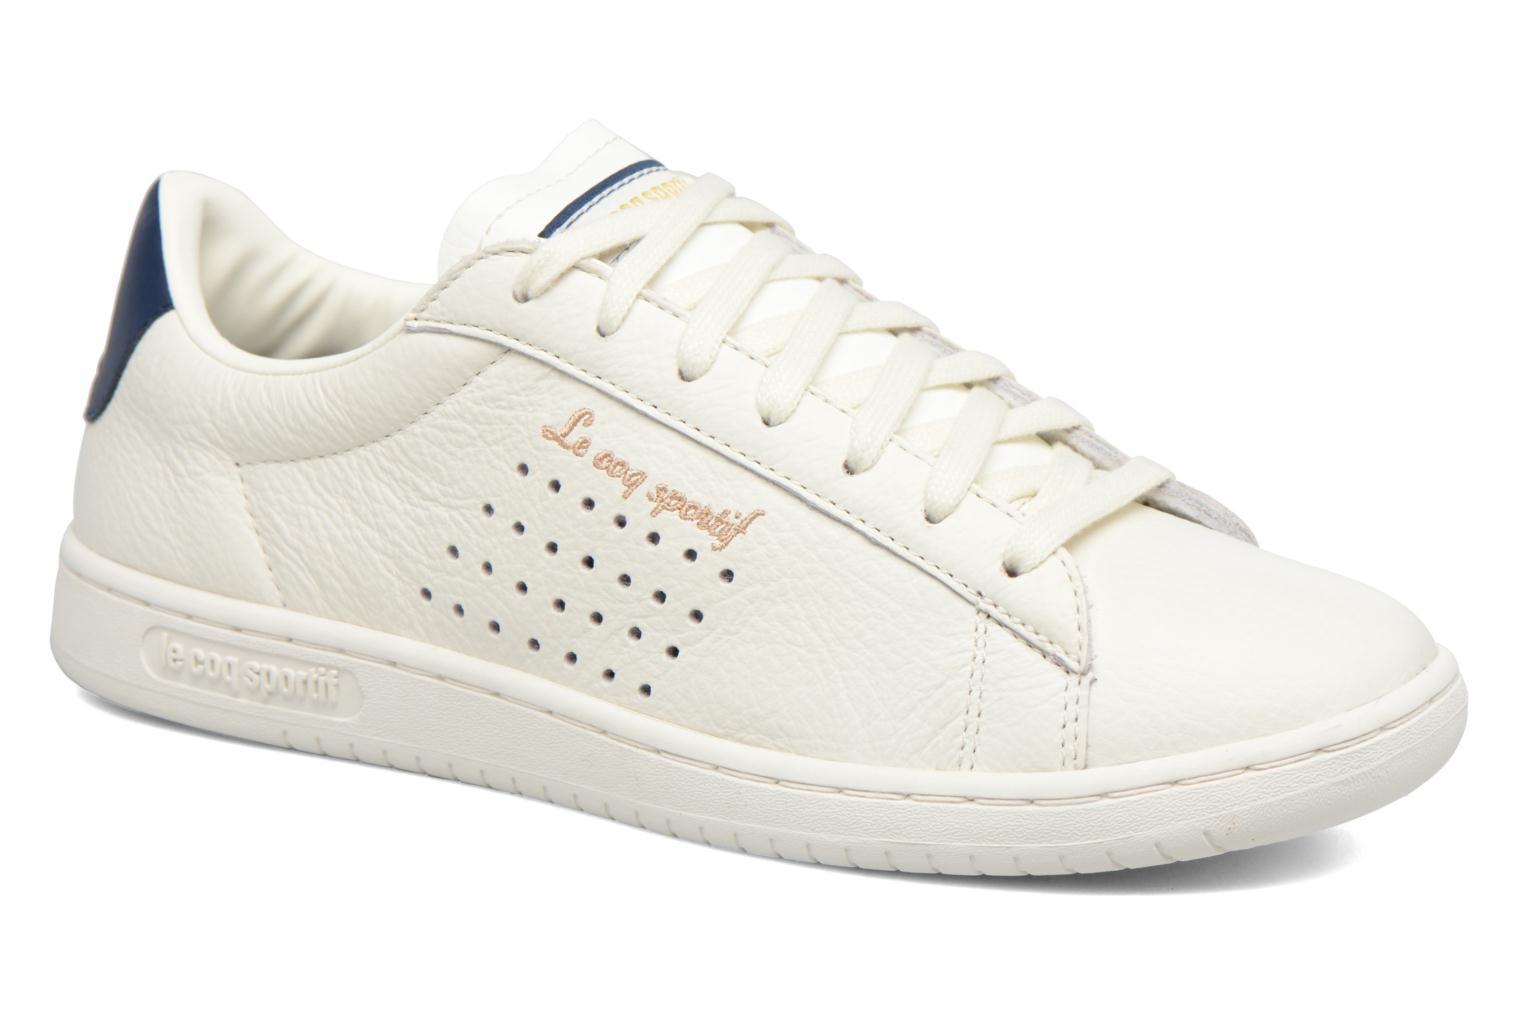 Arthur Ashe Marshmallow/Dress Blue